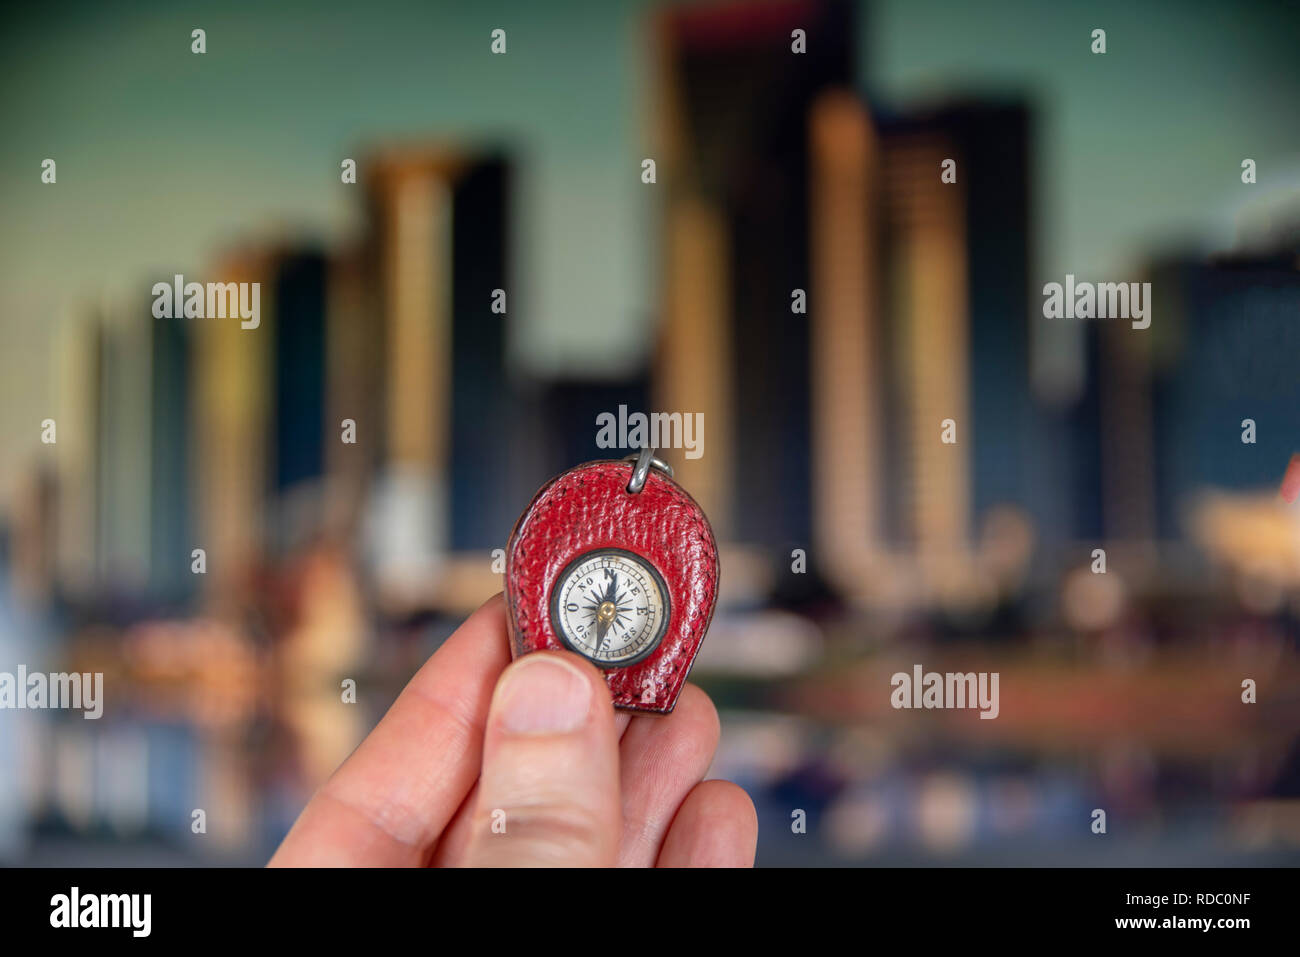 A vintage compass in one hand to navigate in a modern city - Stock Image